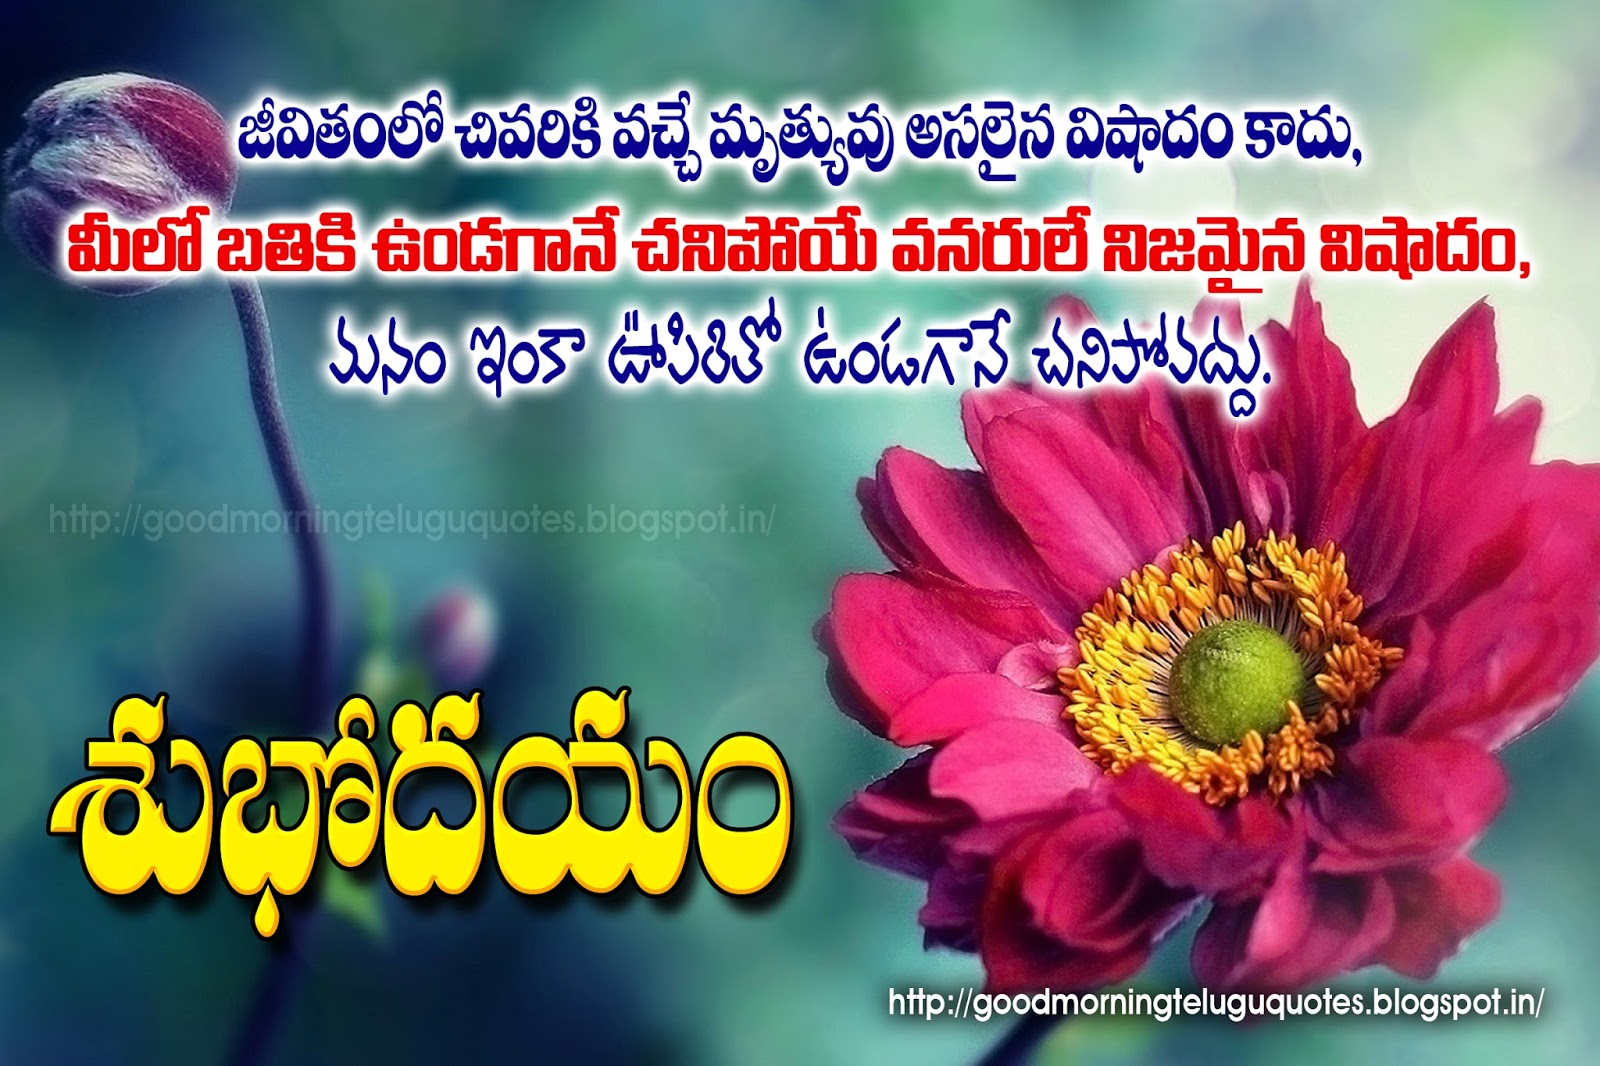 Inspiring Telugu Good Morning Quotes Wishes Walllpapers